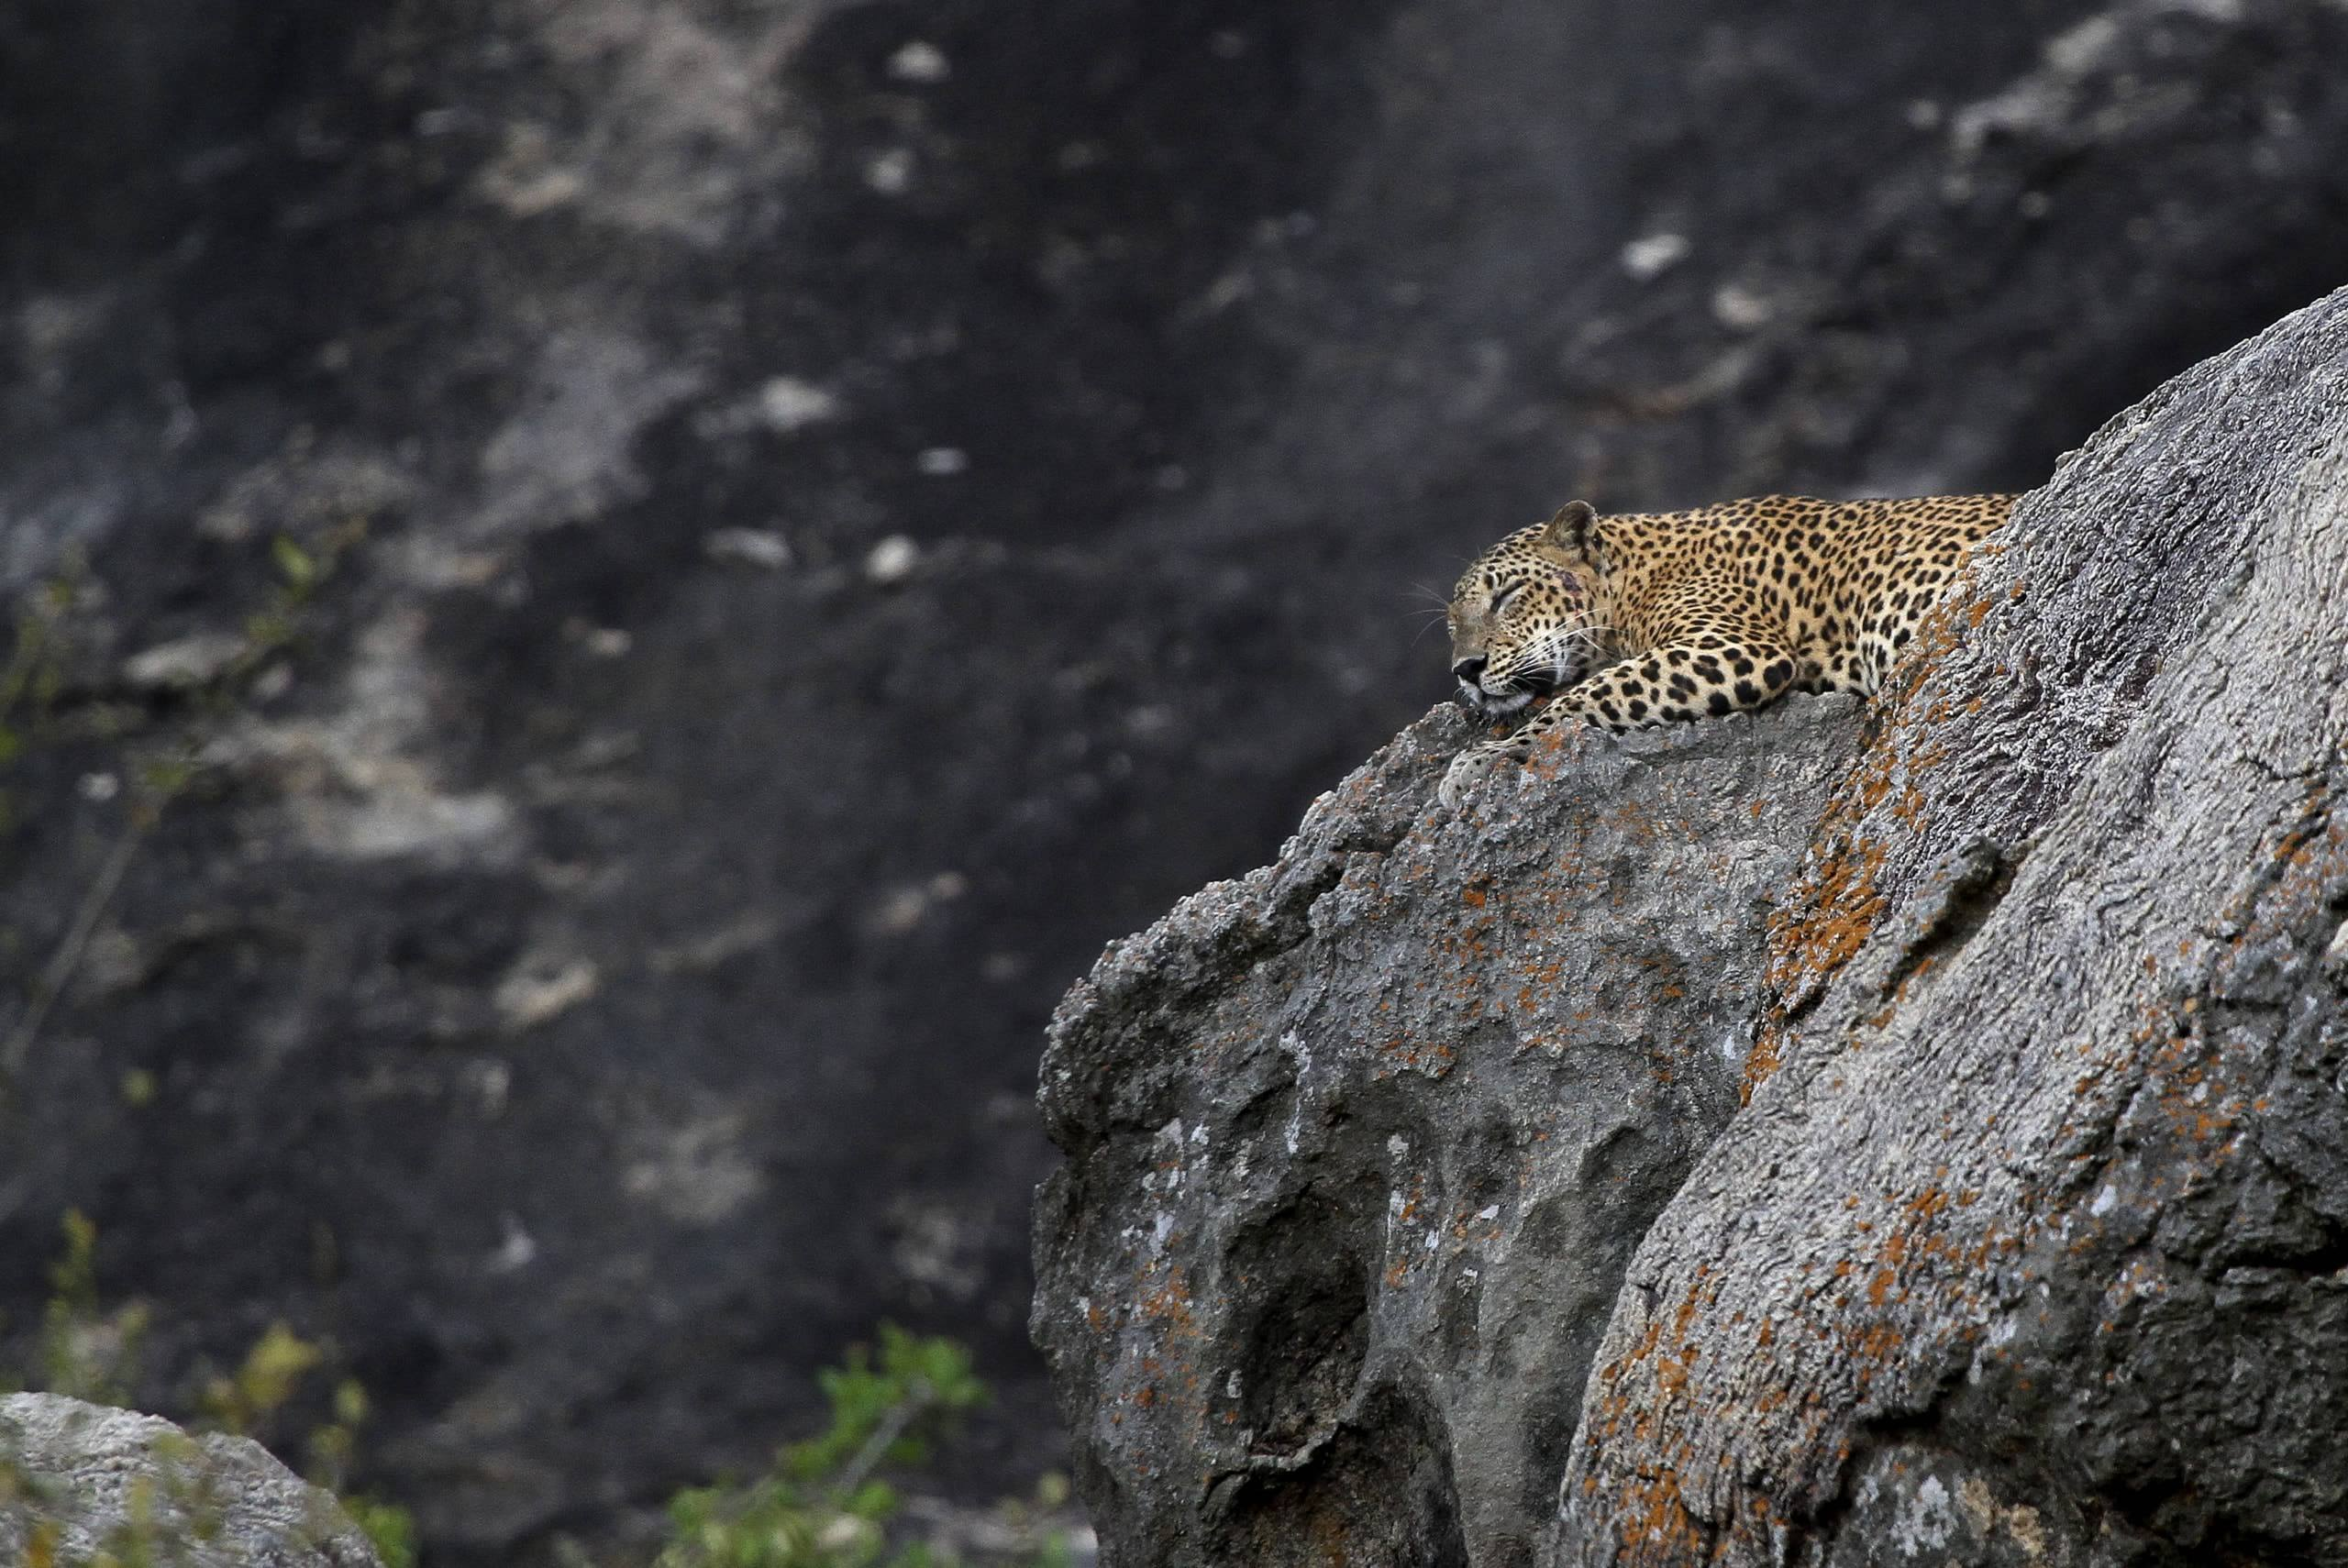 A Leopard asleep on rocks in Yala one of the many locations found on the NaturesLens Wildlife of Sri Lanka Photography Holiday